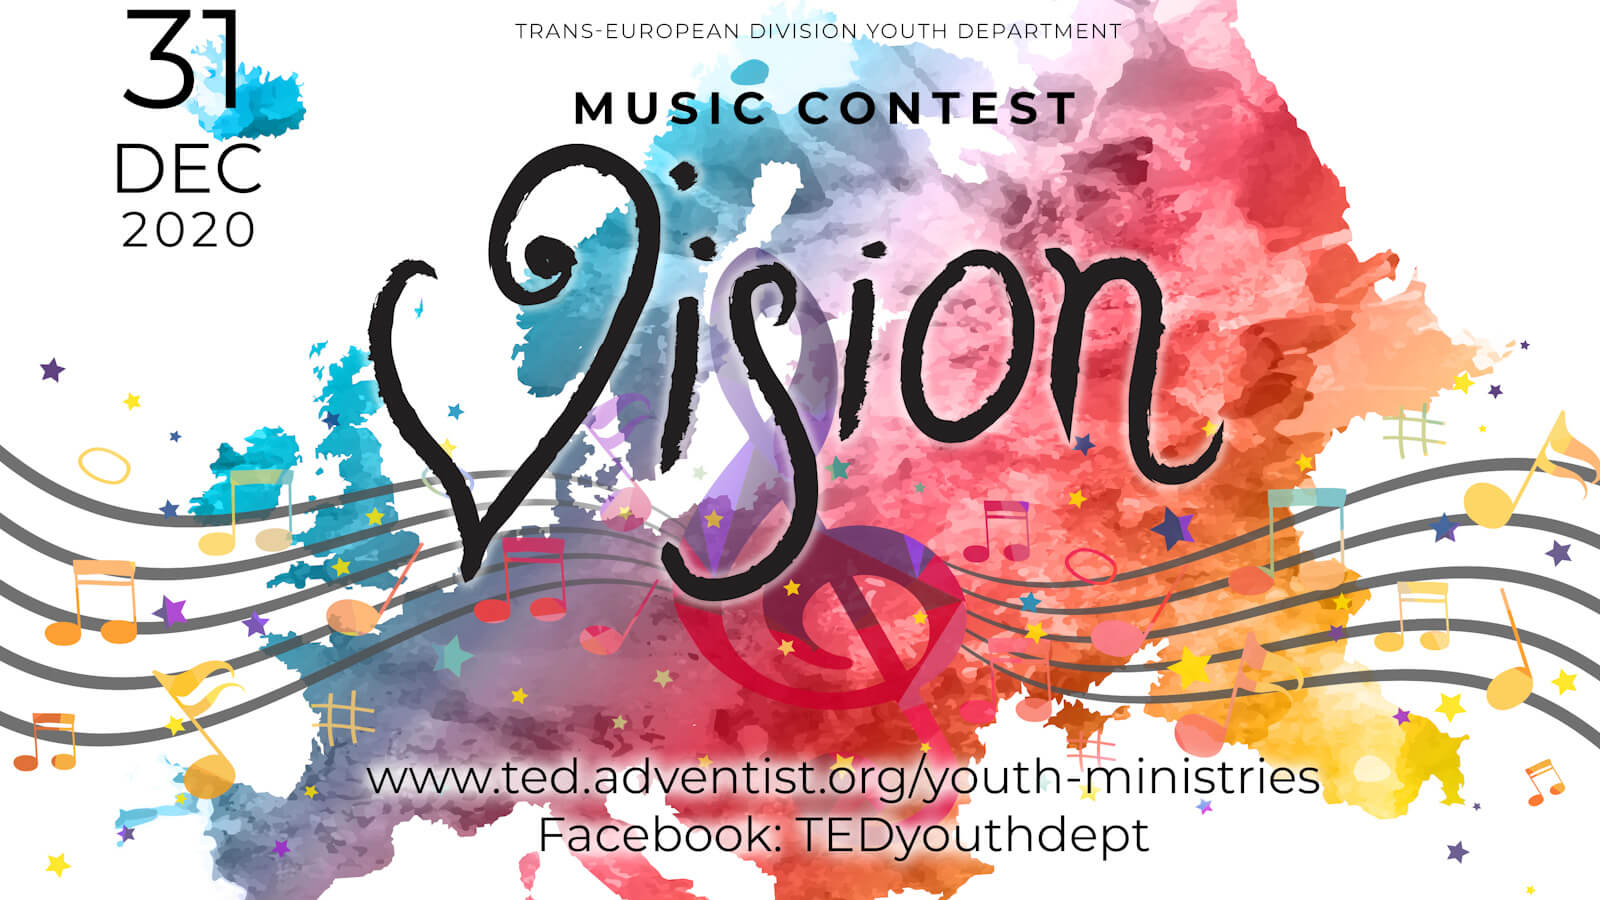 Poster for Music Contest 'Vision'